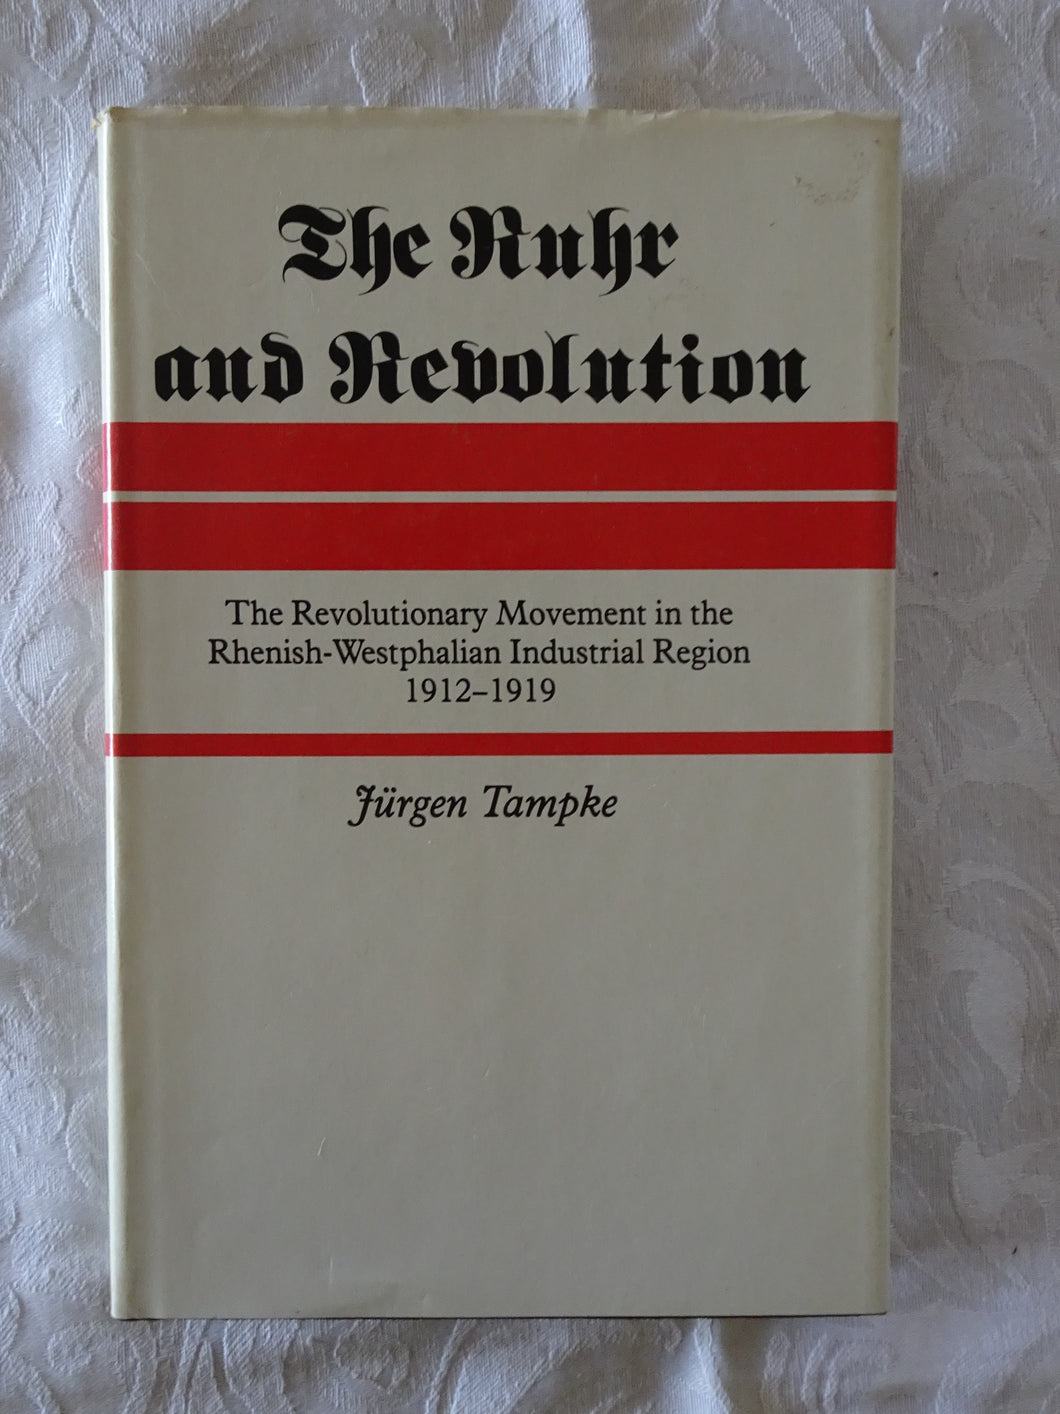 The Ruhr and Revolution by Jurgen Tampke